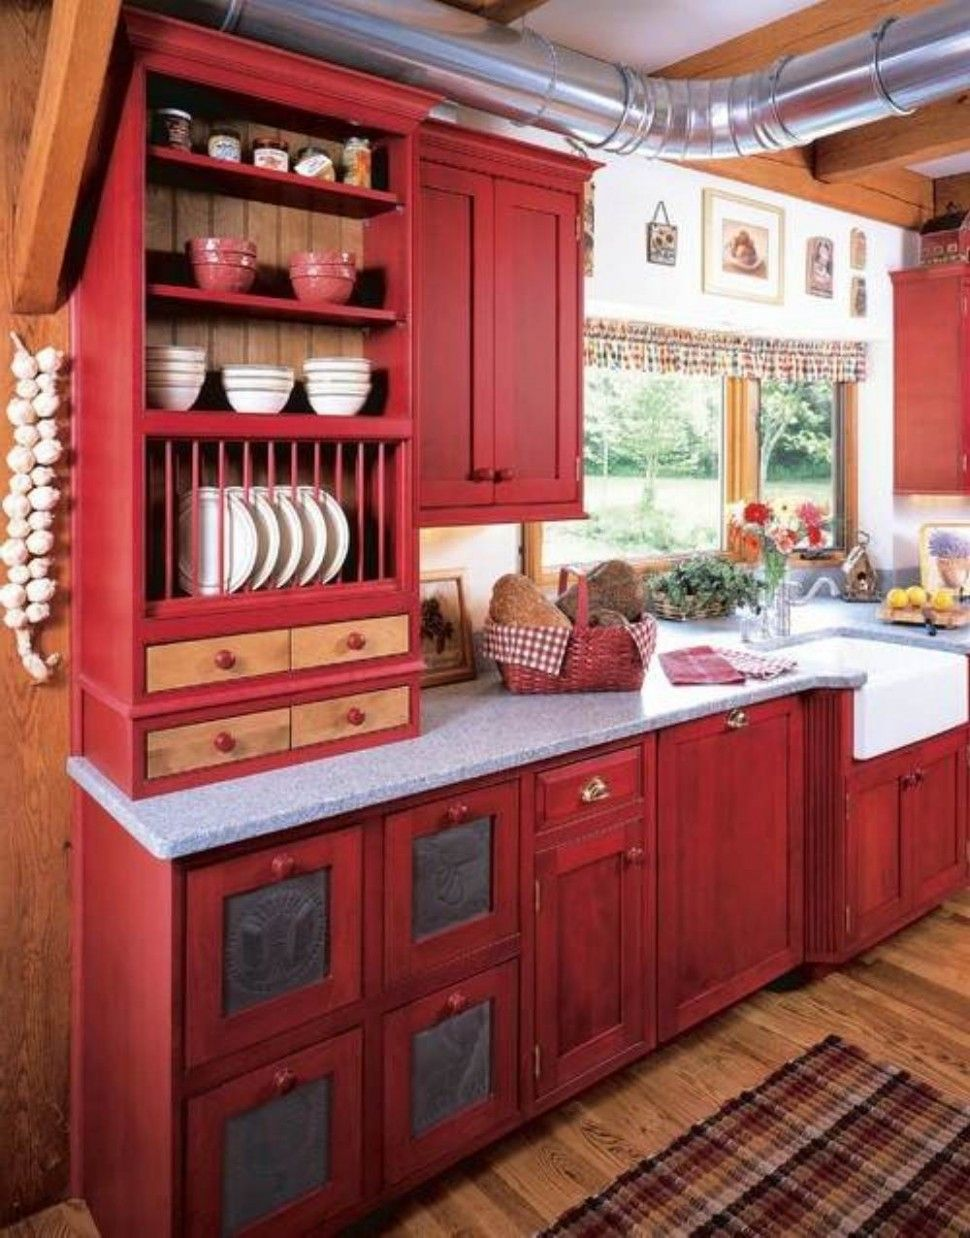 Kitchen Wooden Kitchen Cabinet Red Vintage Wooden Floor Brown Carpet White Wall Wooden Rustic Kitchen Cabinets Red Kitchen Cabinets Country Kitchen Cabinets